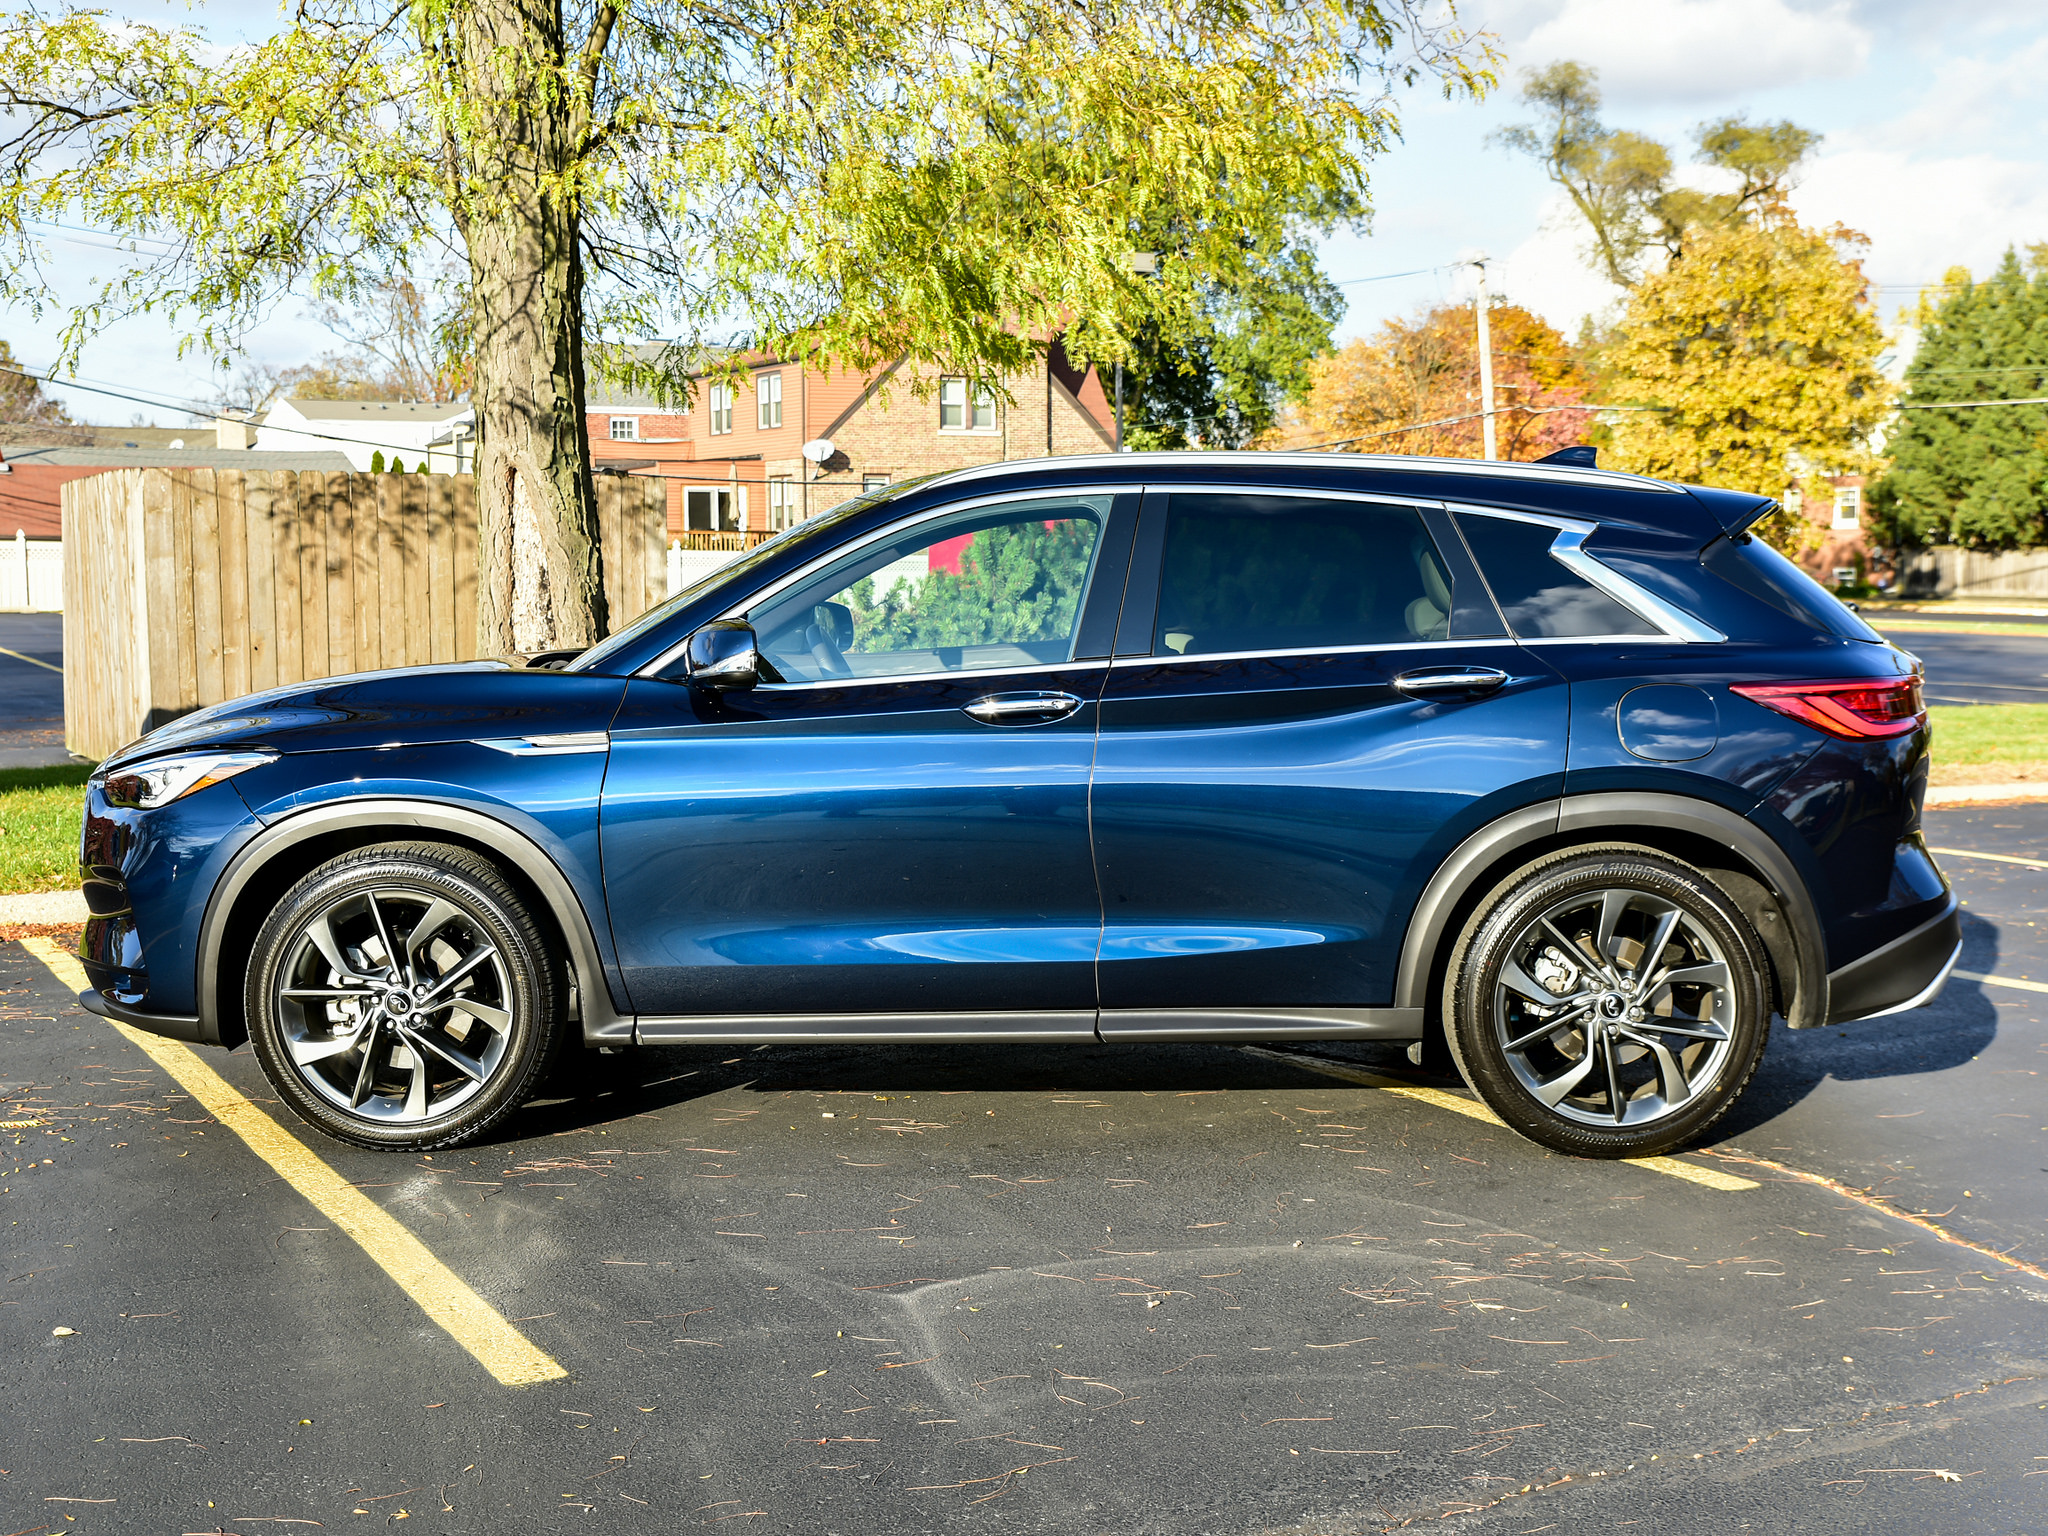 variable-compression engine meets crossover: infiniti qx50 review